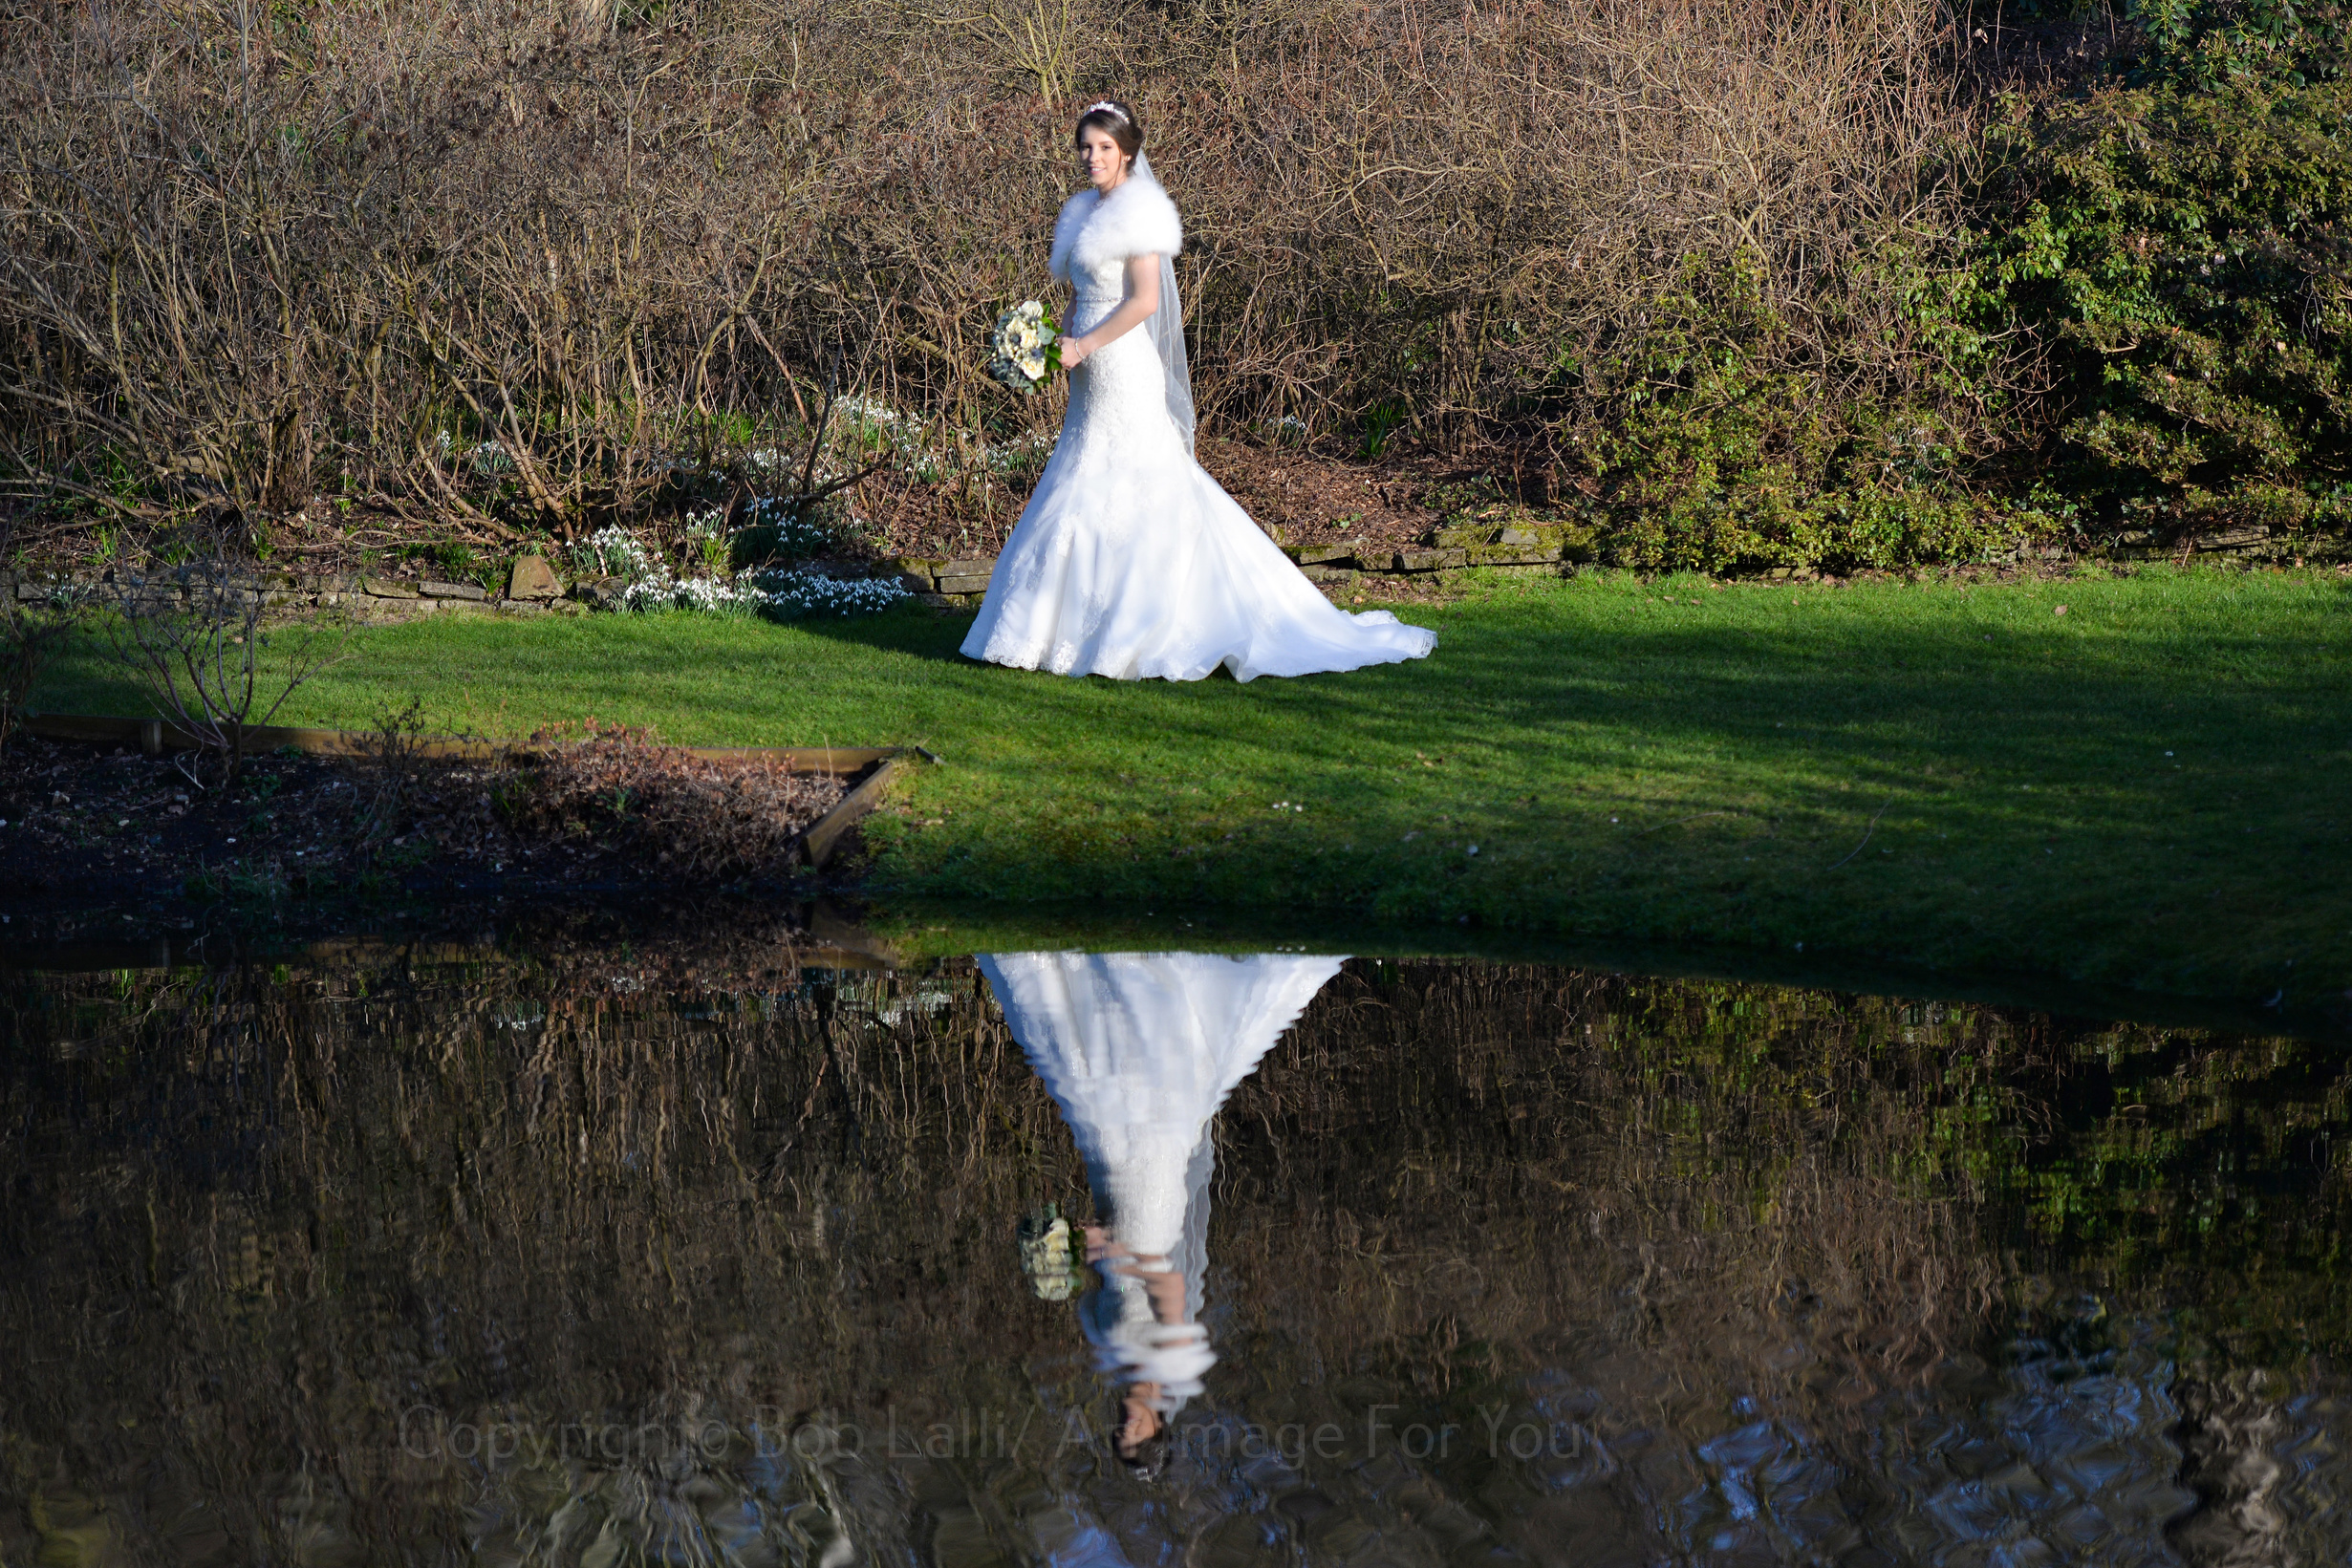 Reflection of Bride